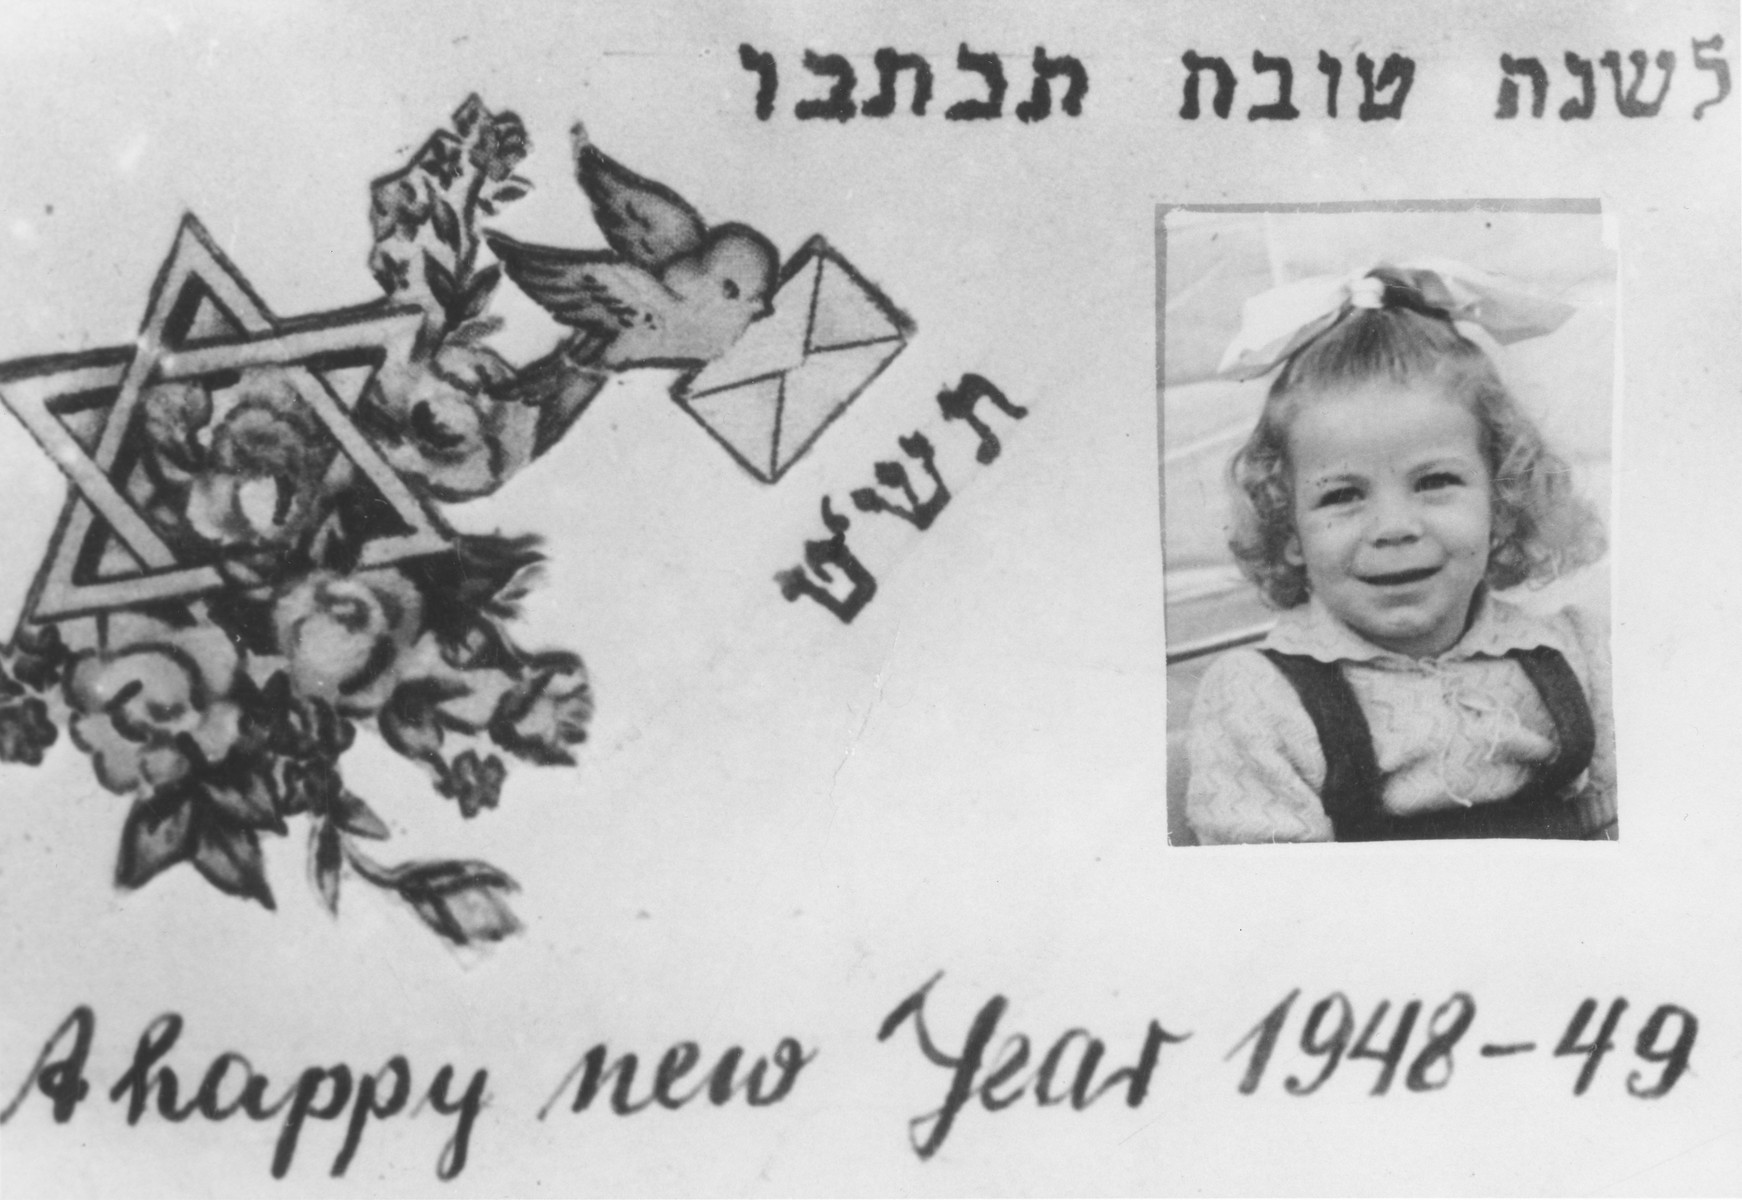 Personalized Jewish New Year card produced in the Bari displaced persons camp that includes a photograph of Miriam Schechter, the daughter of Isidor and Tauba (Falakovics) Schechter.